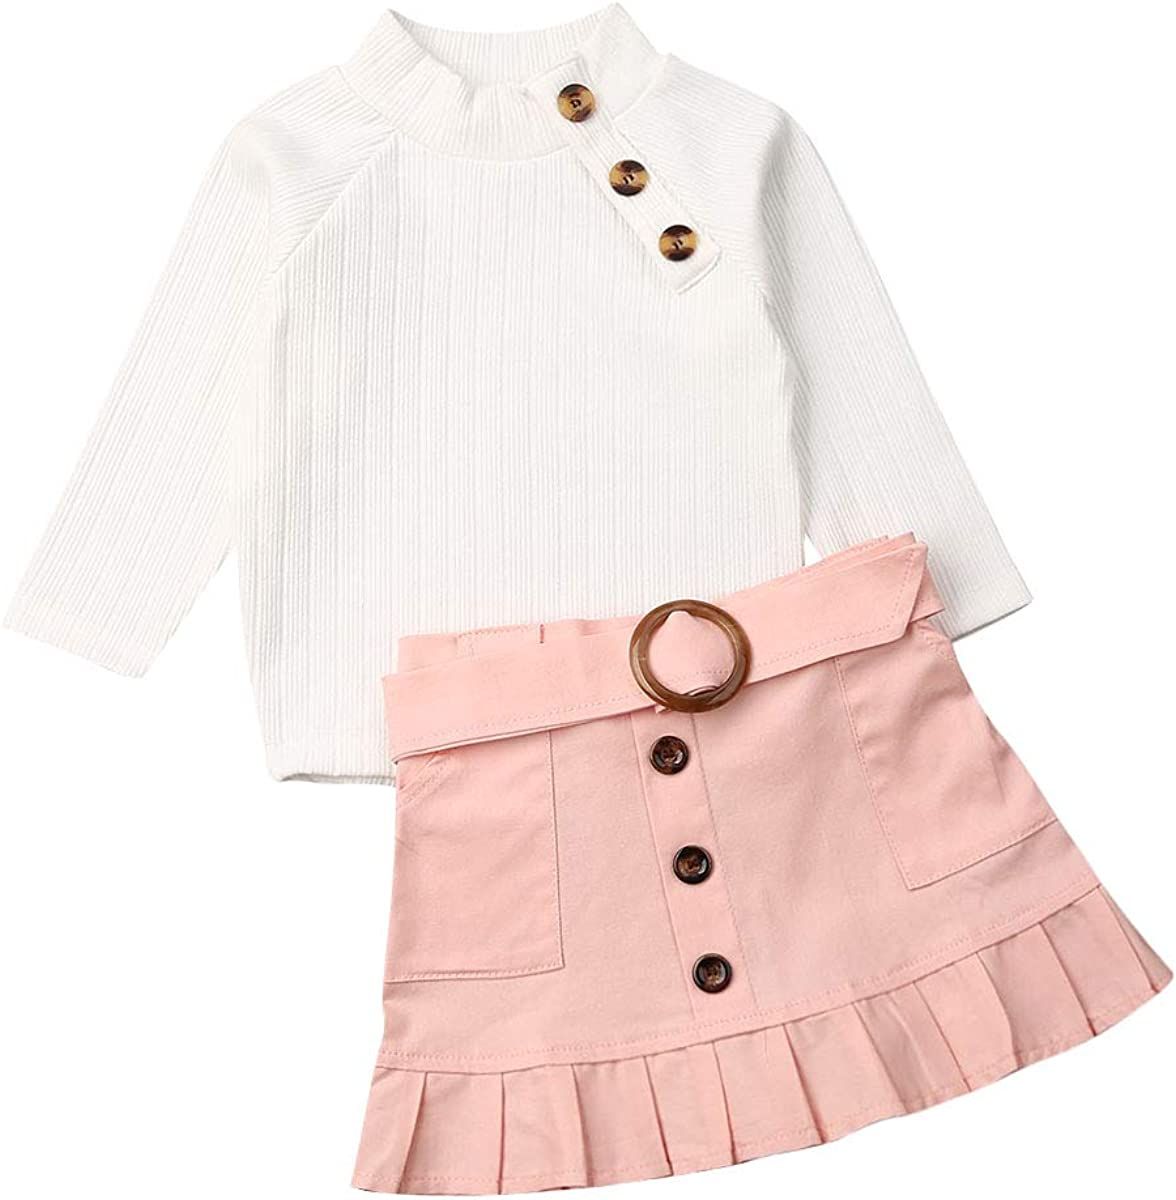 Kids Toddler Baby Girl Fall Winter Outfit Long Sleeve Pompom Knitted Shirt Sweater Top Button Skirt 2PCS Clothes Set